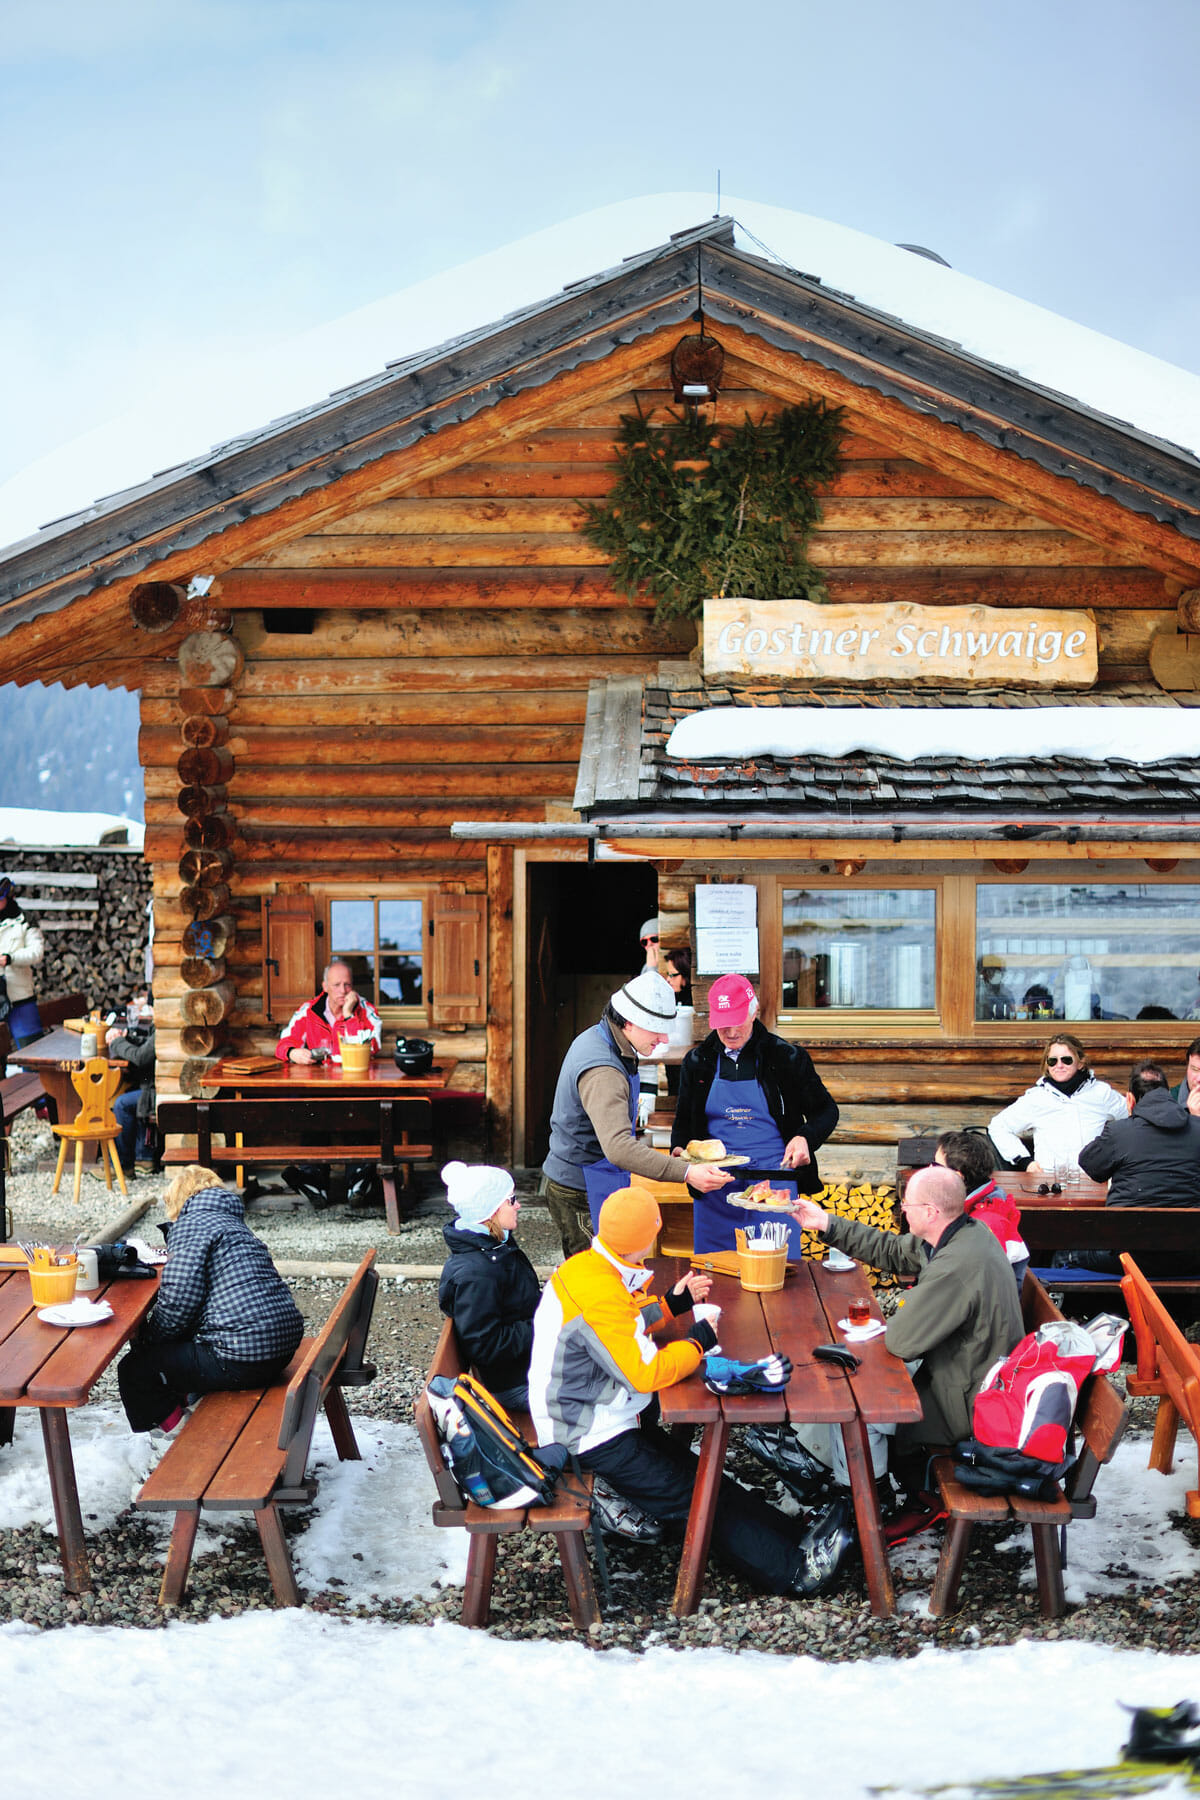 A view of the restaurant's entryway. During the day, hikers and skiiers eat simple fare, and at night more elaborate multicourse meals are served.